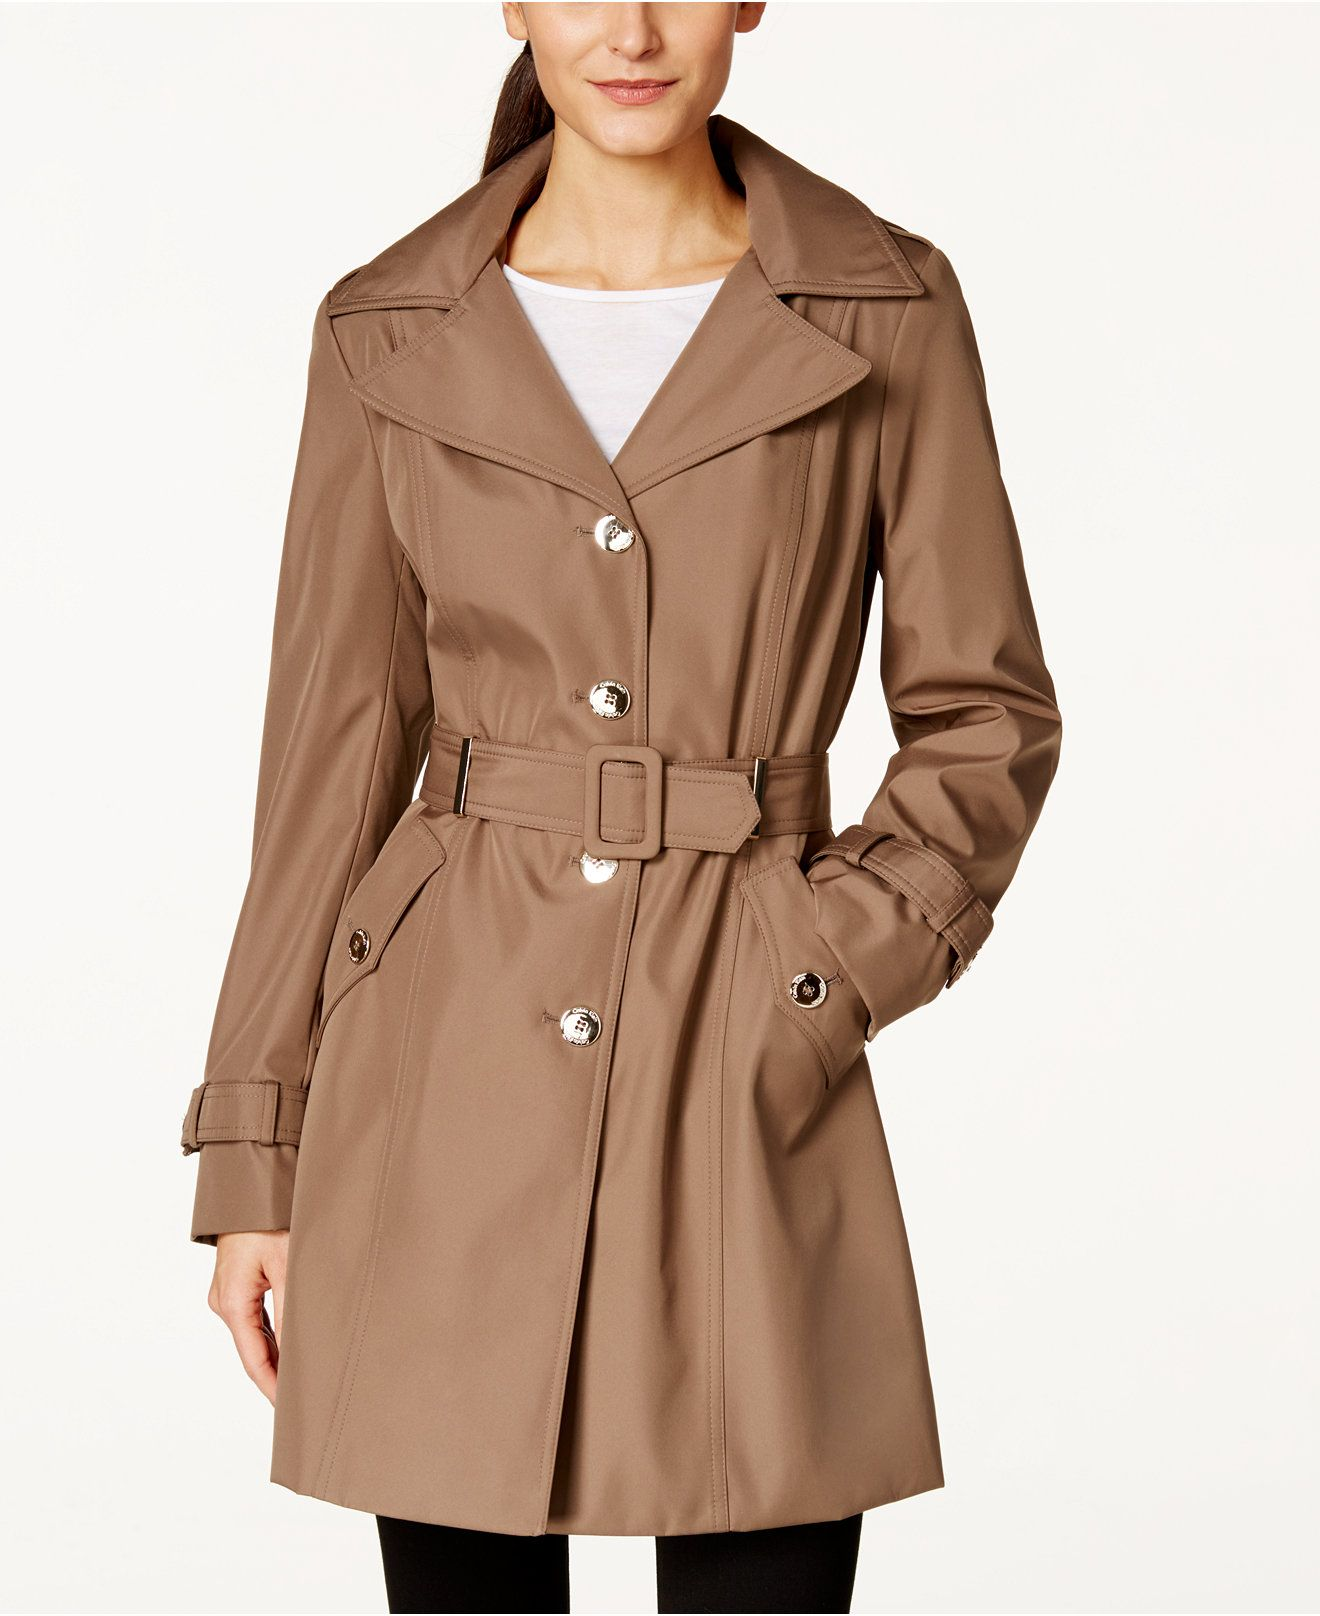 macys-petite-coats-naked-teen-groups-photo-galleries